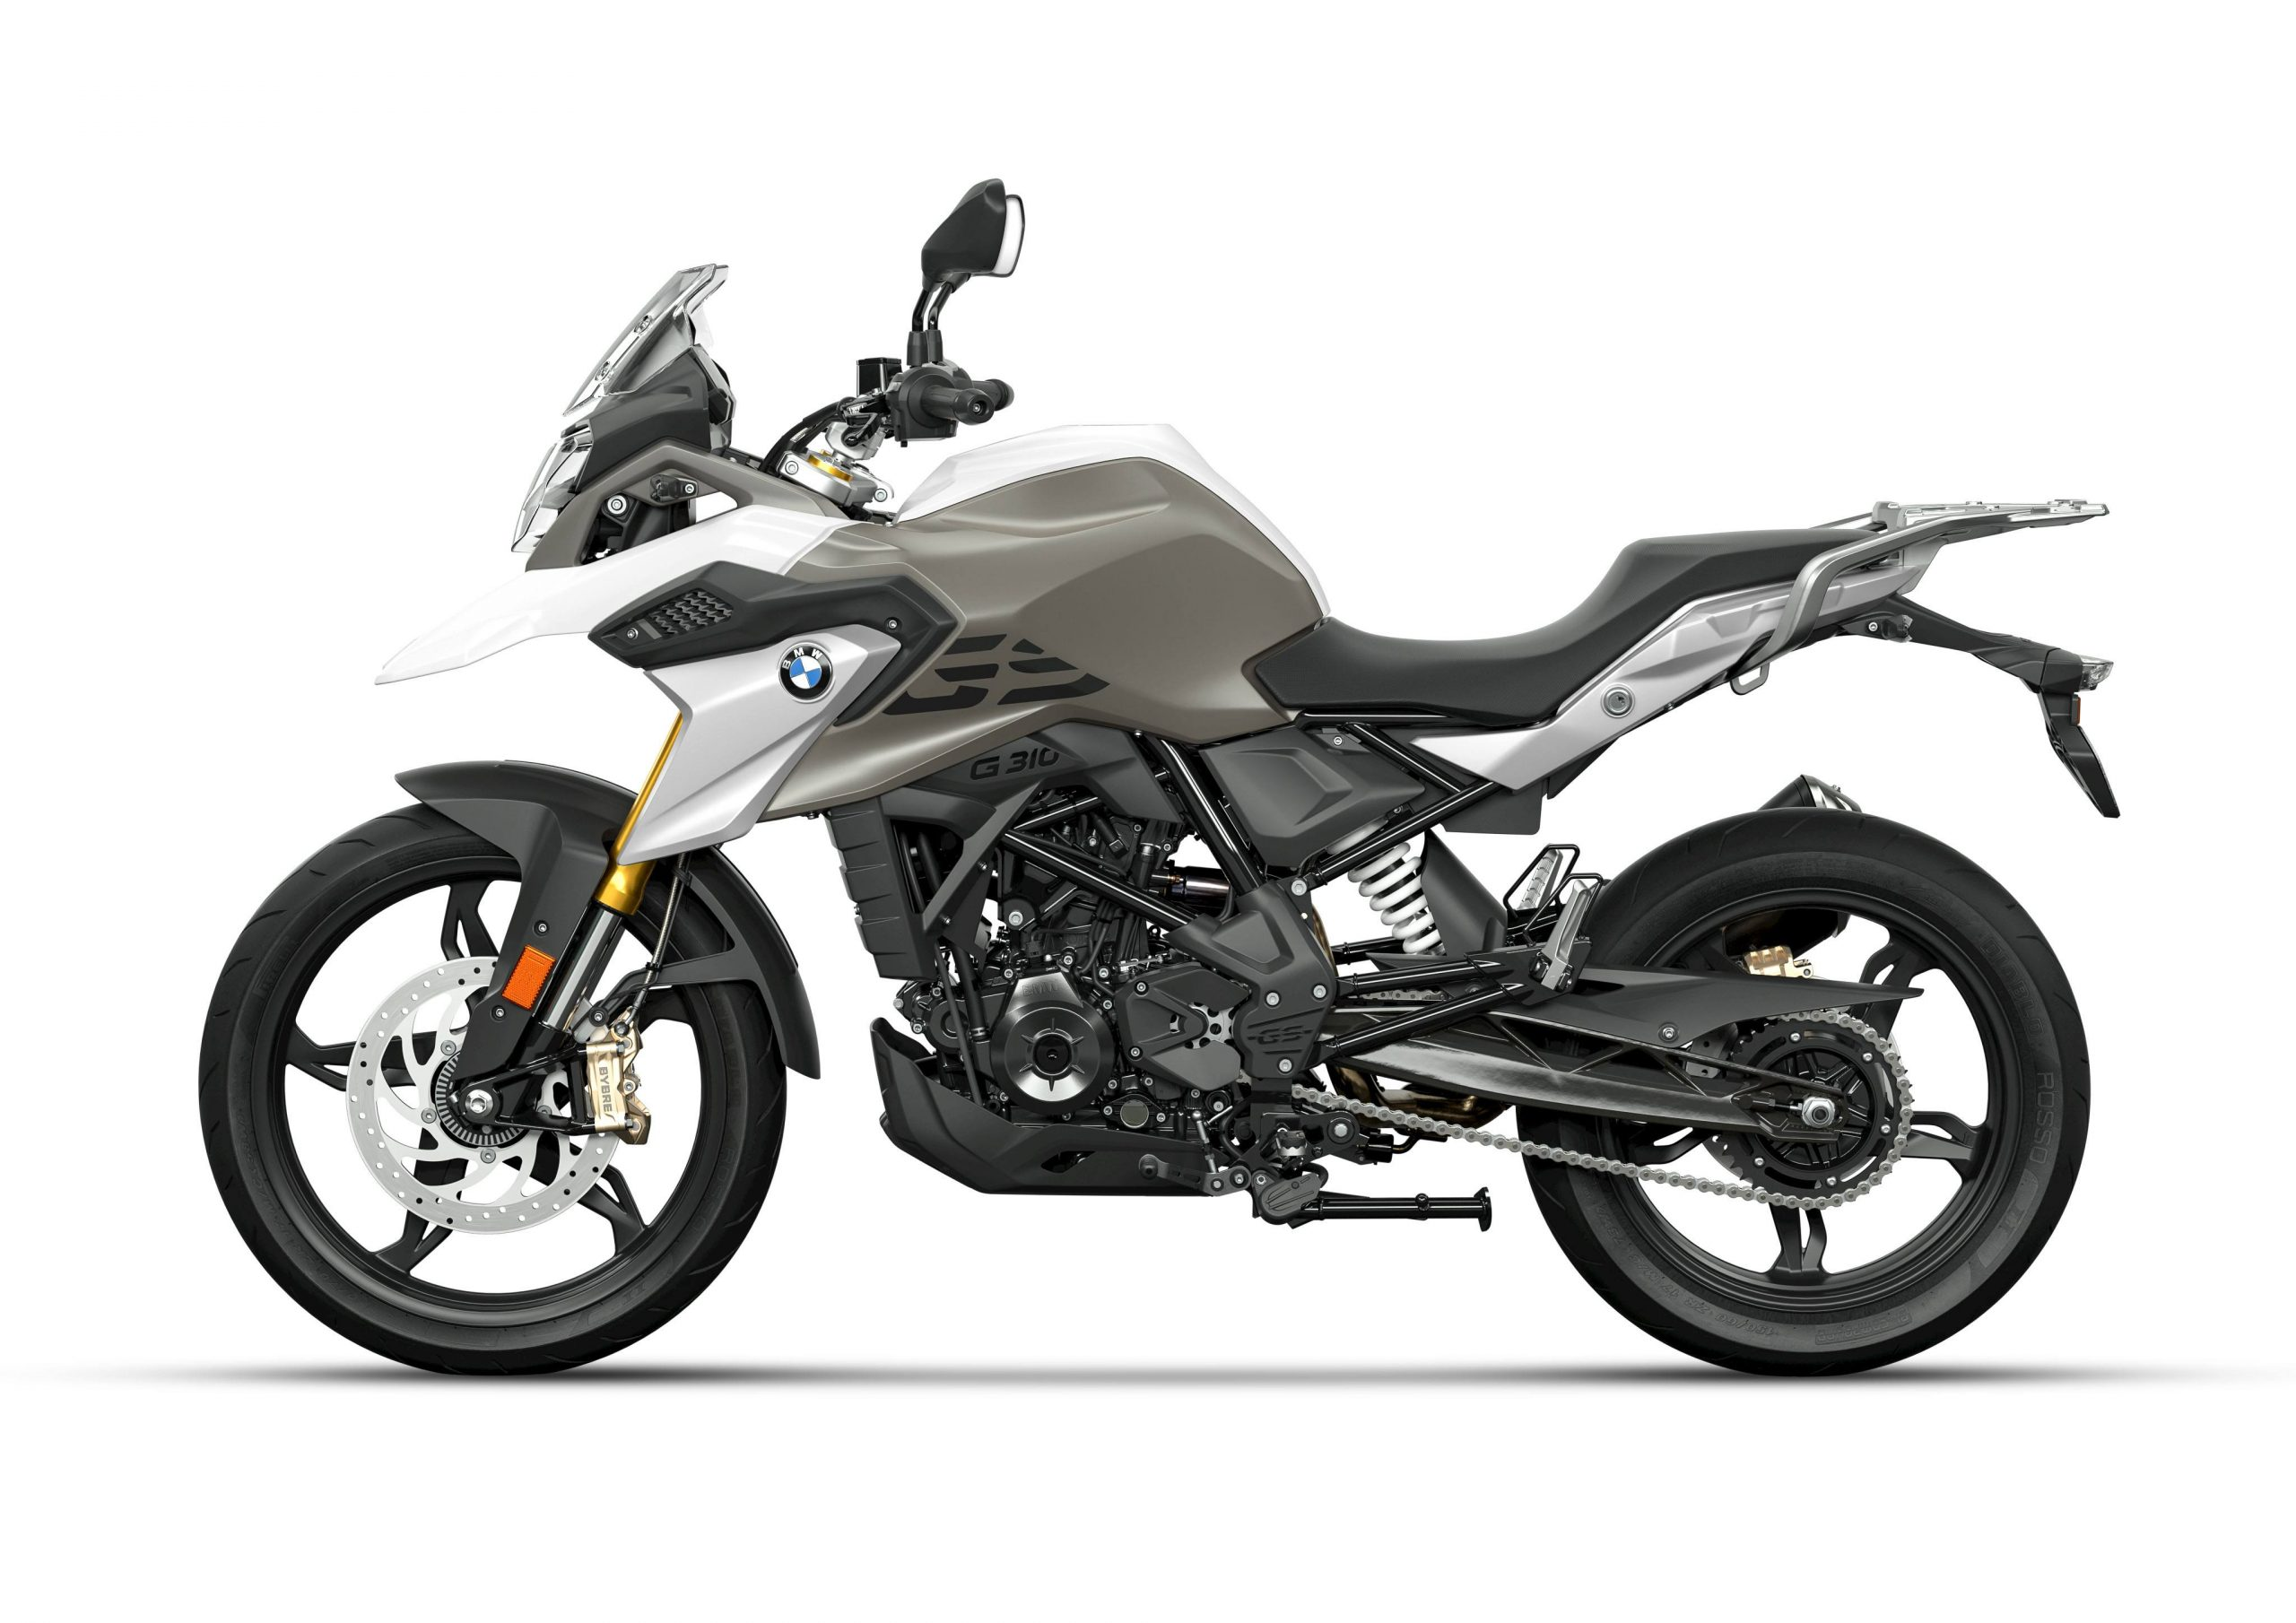 here's your first look at the 2021 bmw g 310 gs - robert's